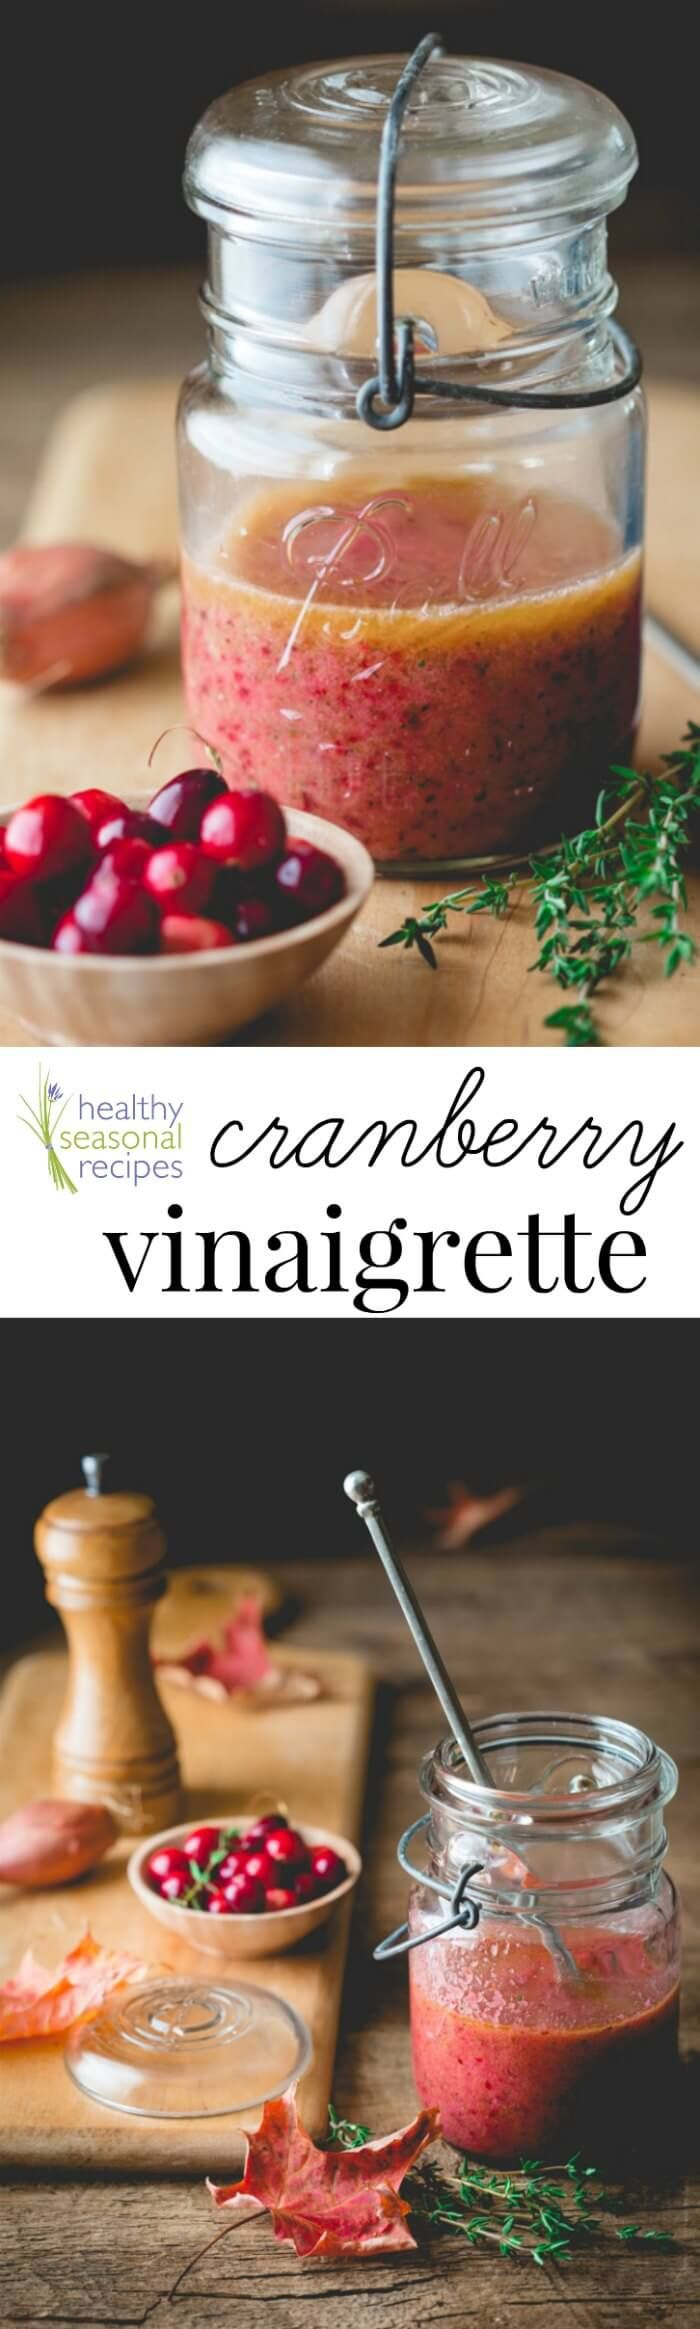 Blog post at Healthy Seasonal Recipes : Hi all, I have just a quick one today. It's healthy easy cranberry vinaigrette for dressing up fall and winter salads. You'll want to keep[..]